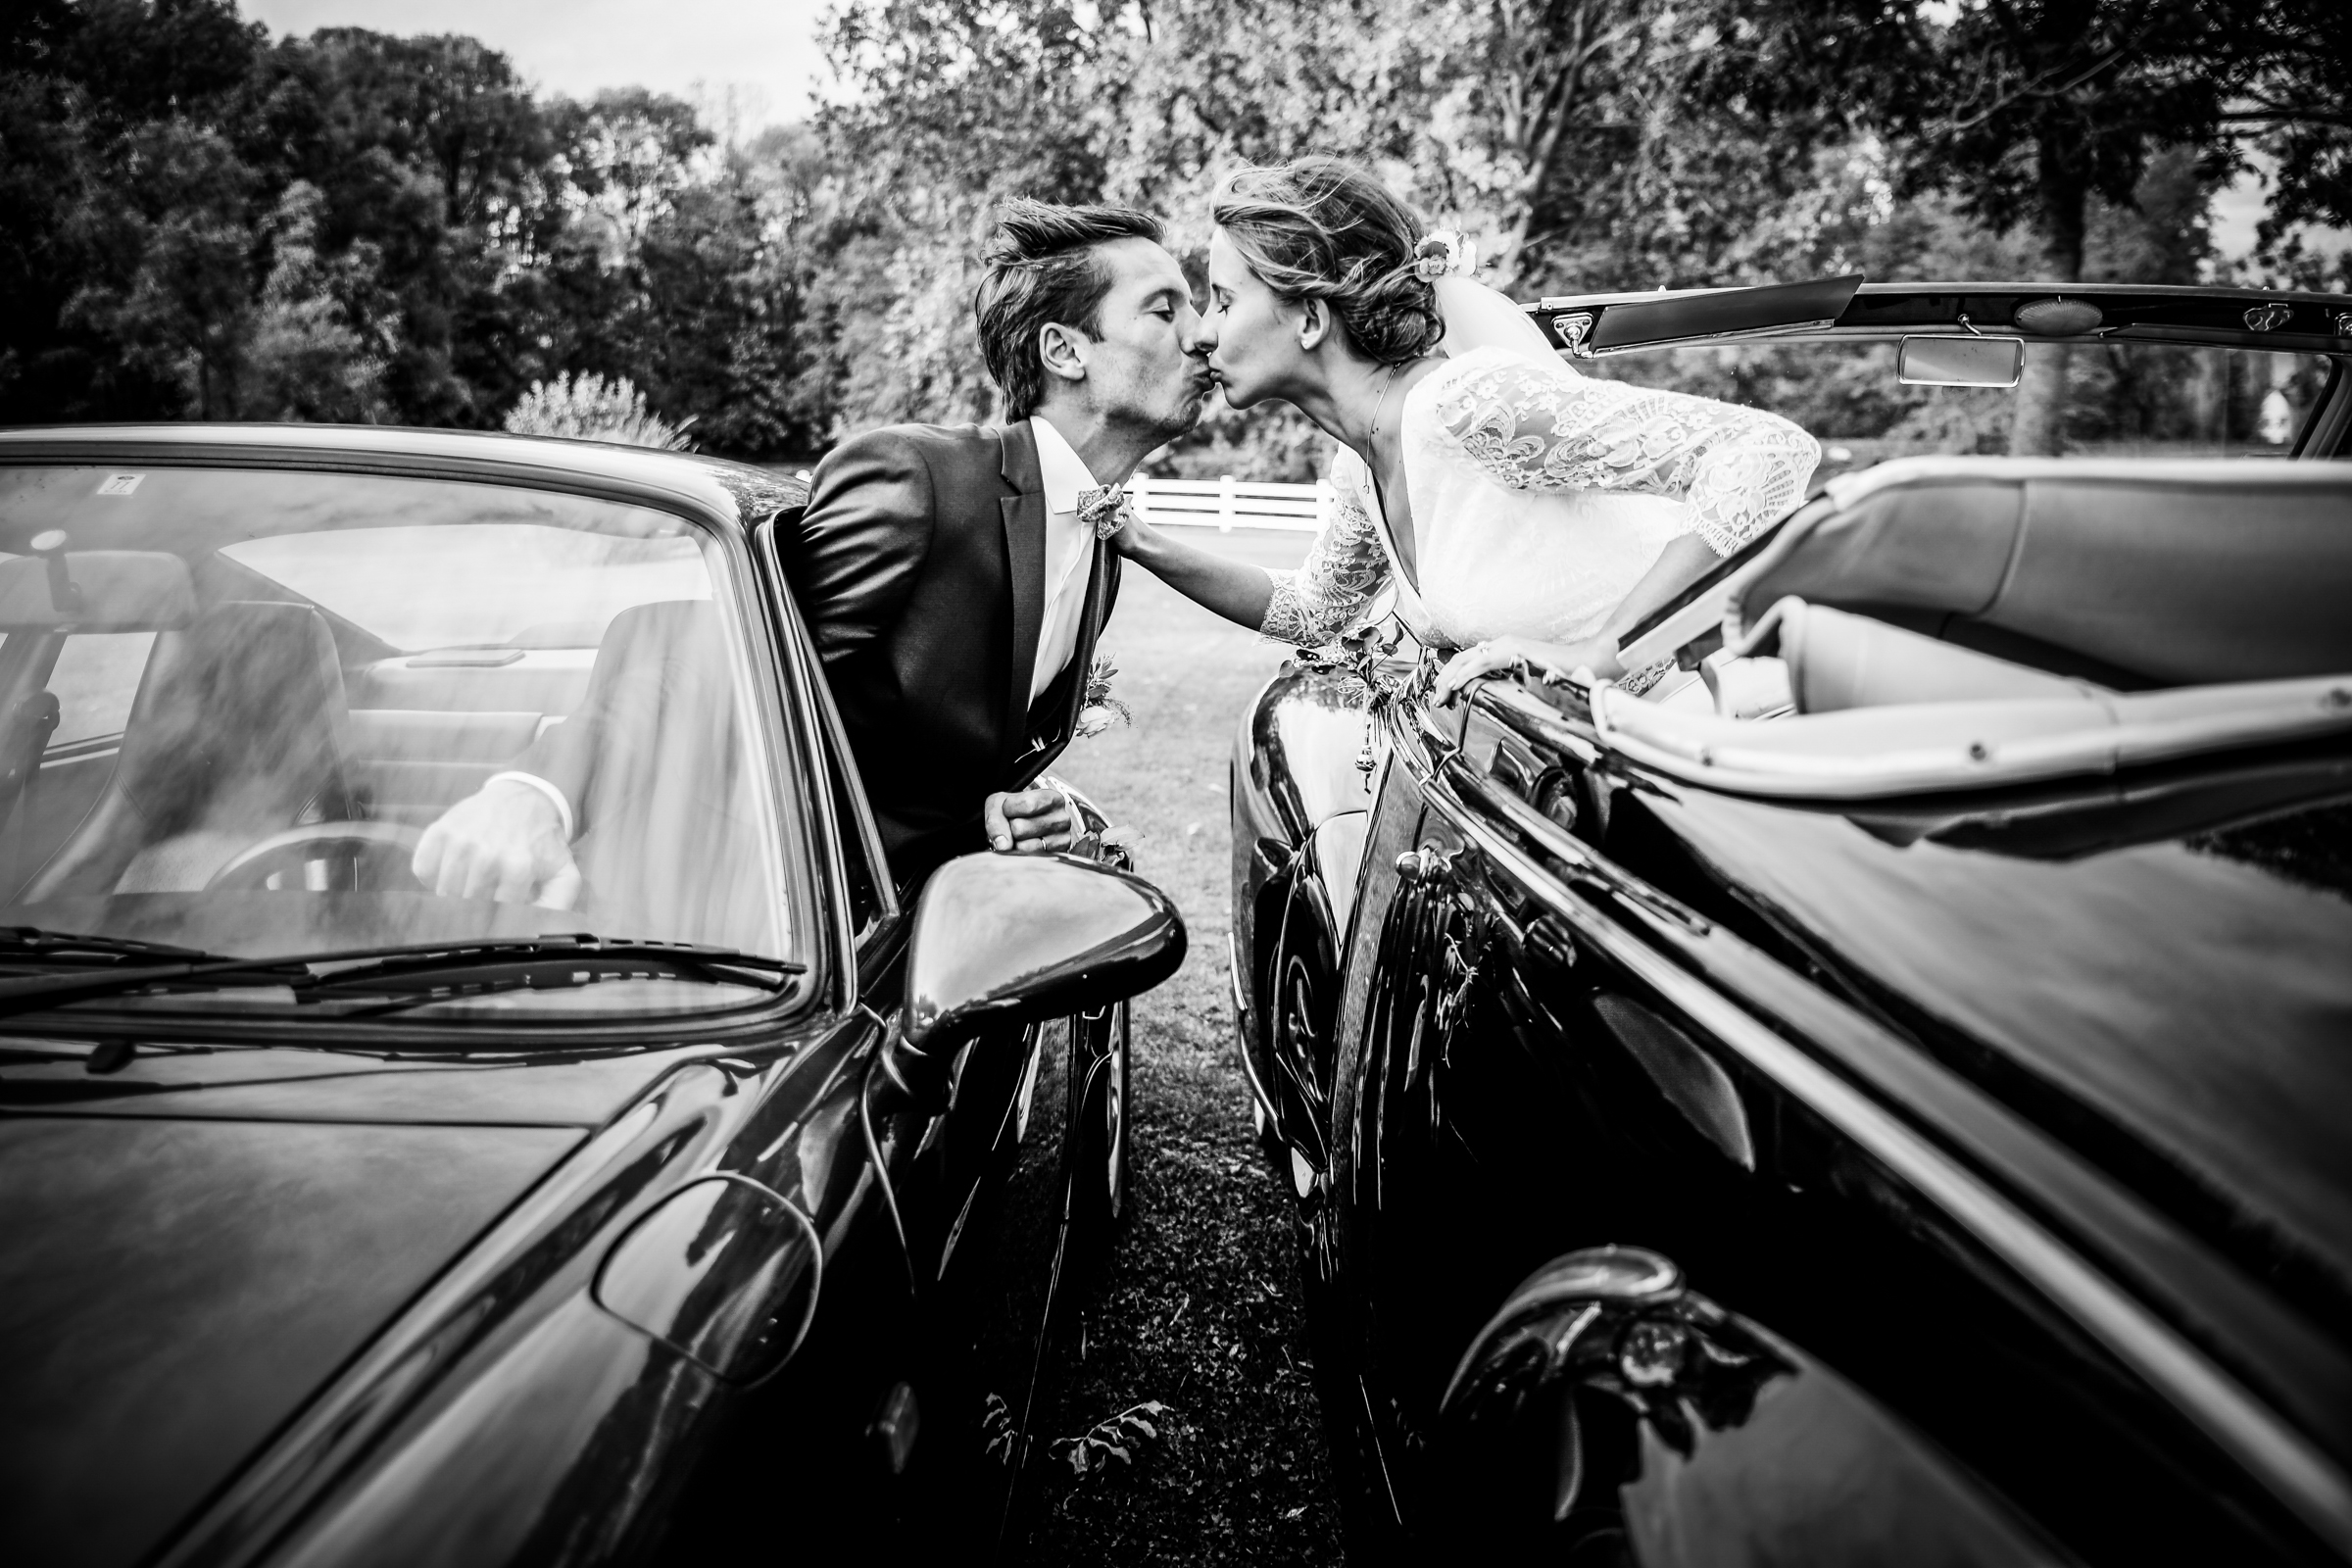 Bride and groom kiss across cars - photo by Julien Laurent-Georges